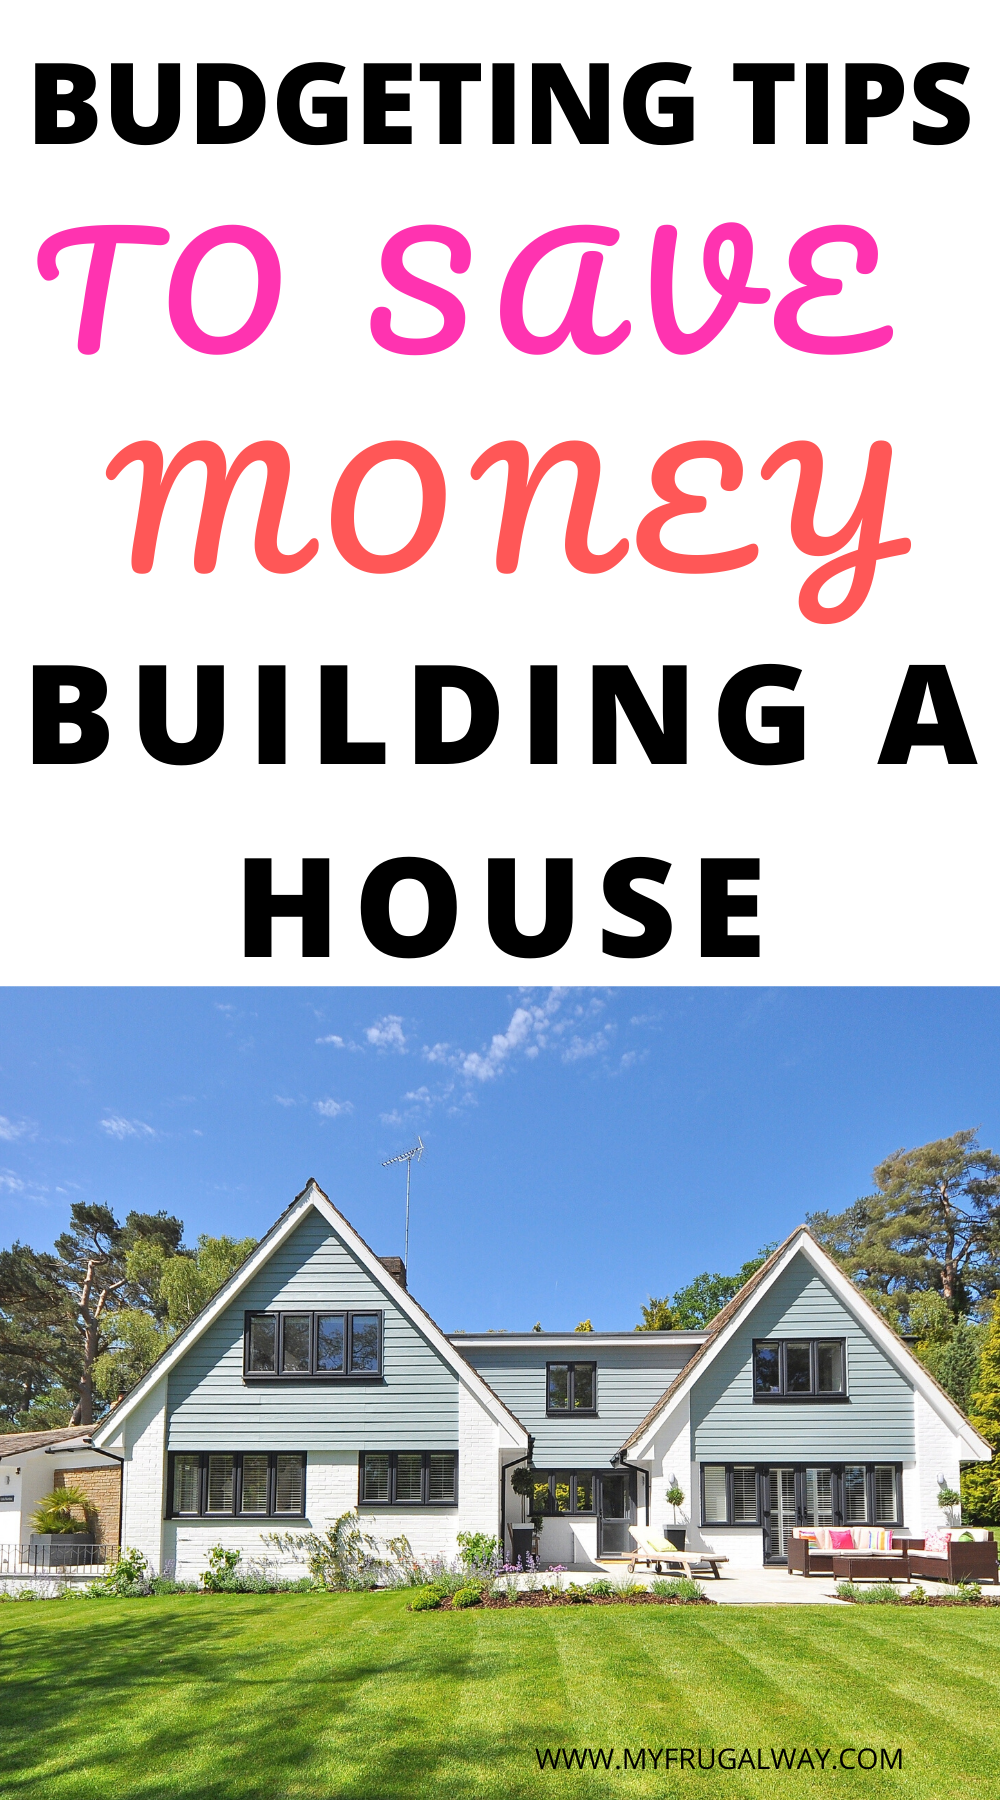 How To Save Money Building A House In 2020 Building A House Home Construction Cost Building A House Cost